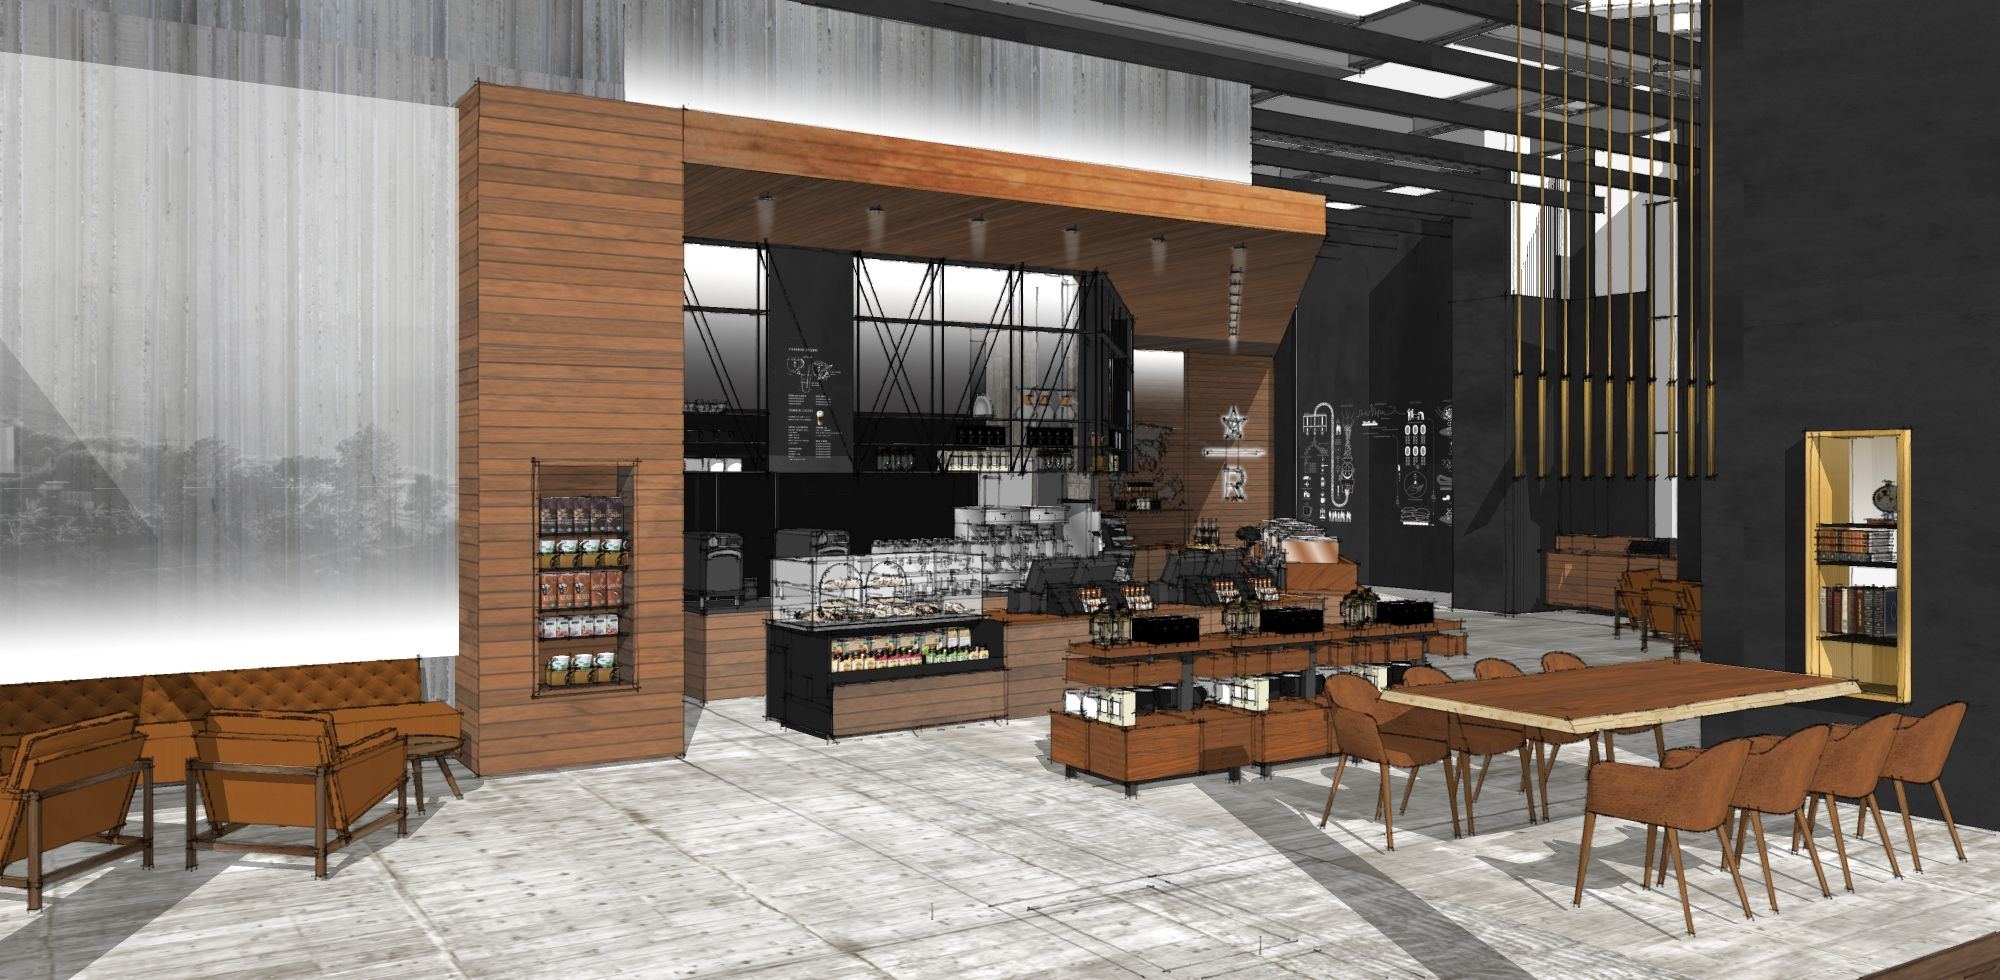 Sketchup Rendering Of The Starbucks Reserve Bar At